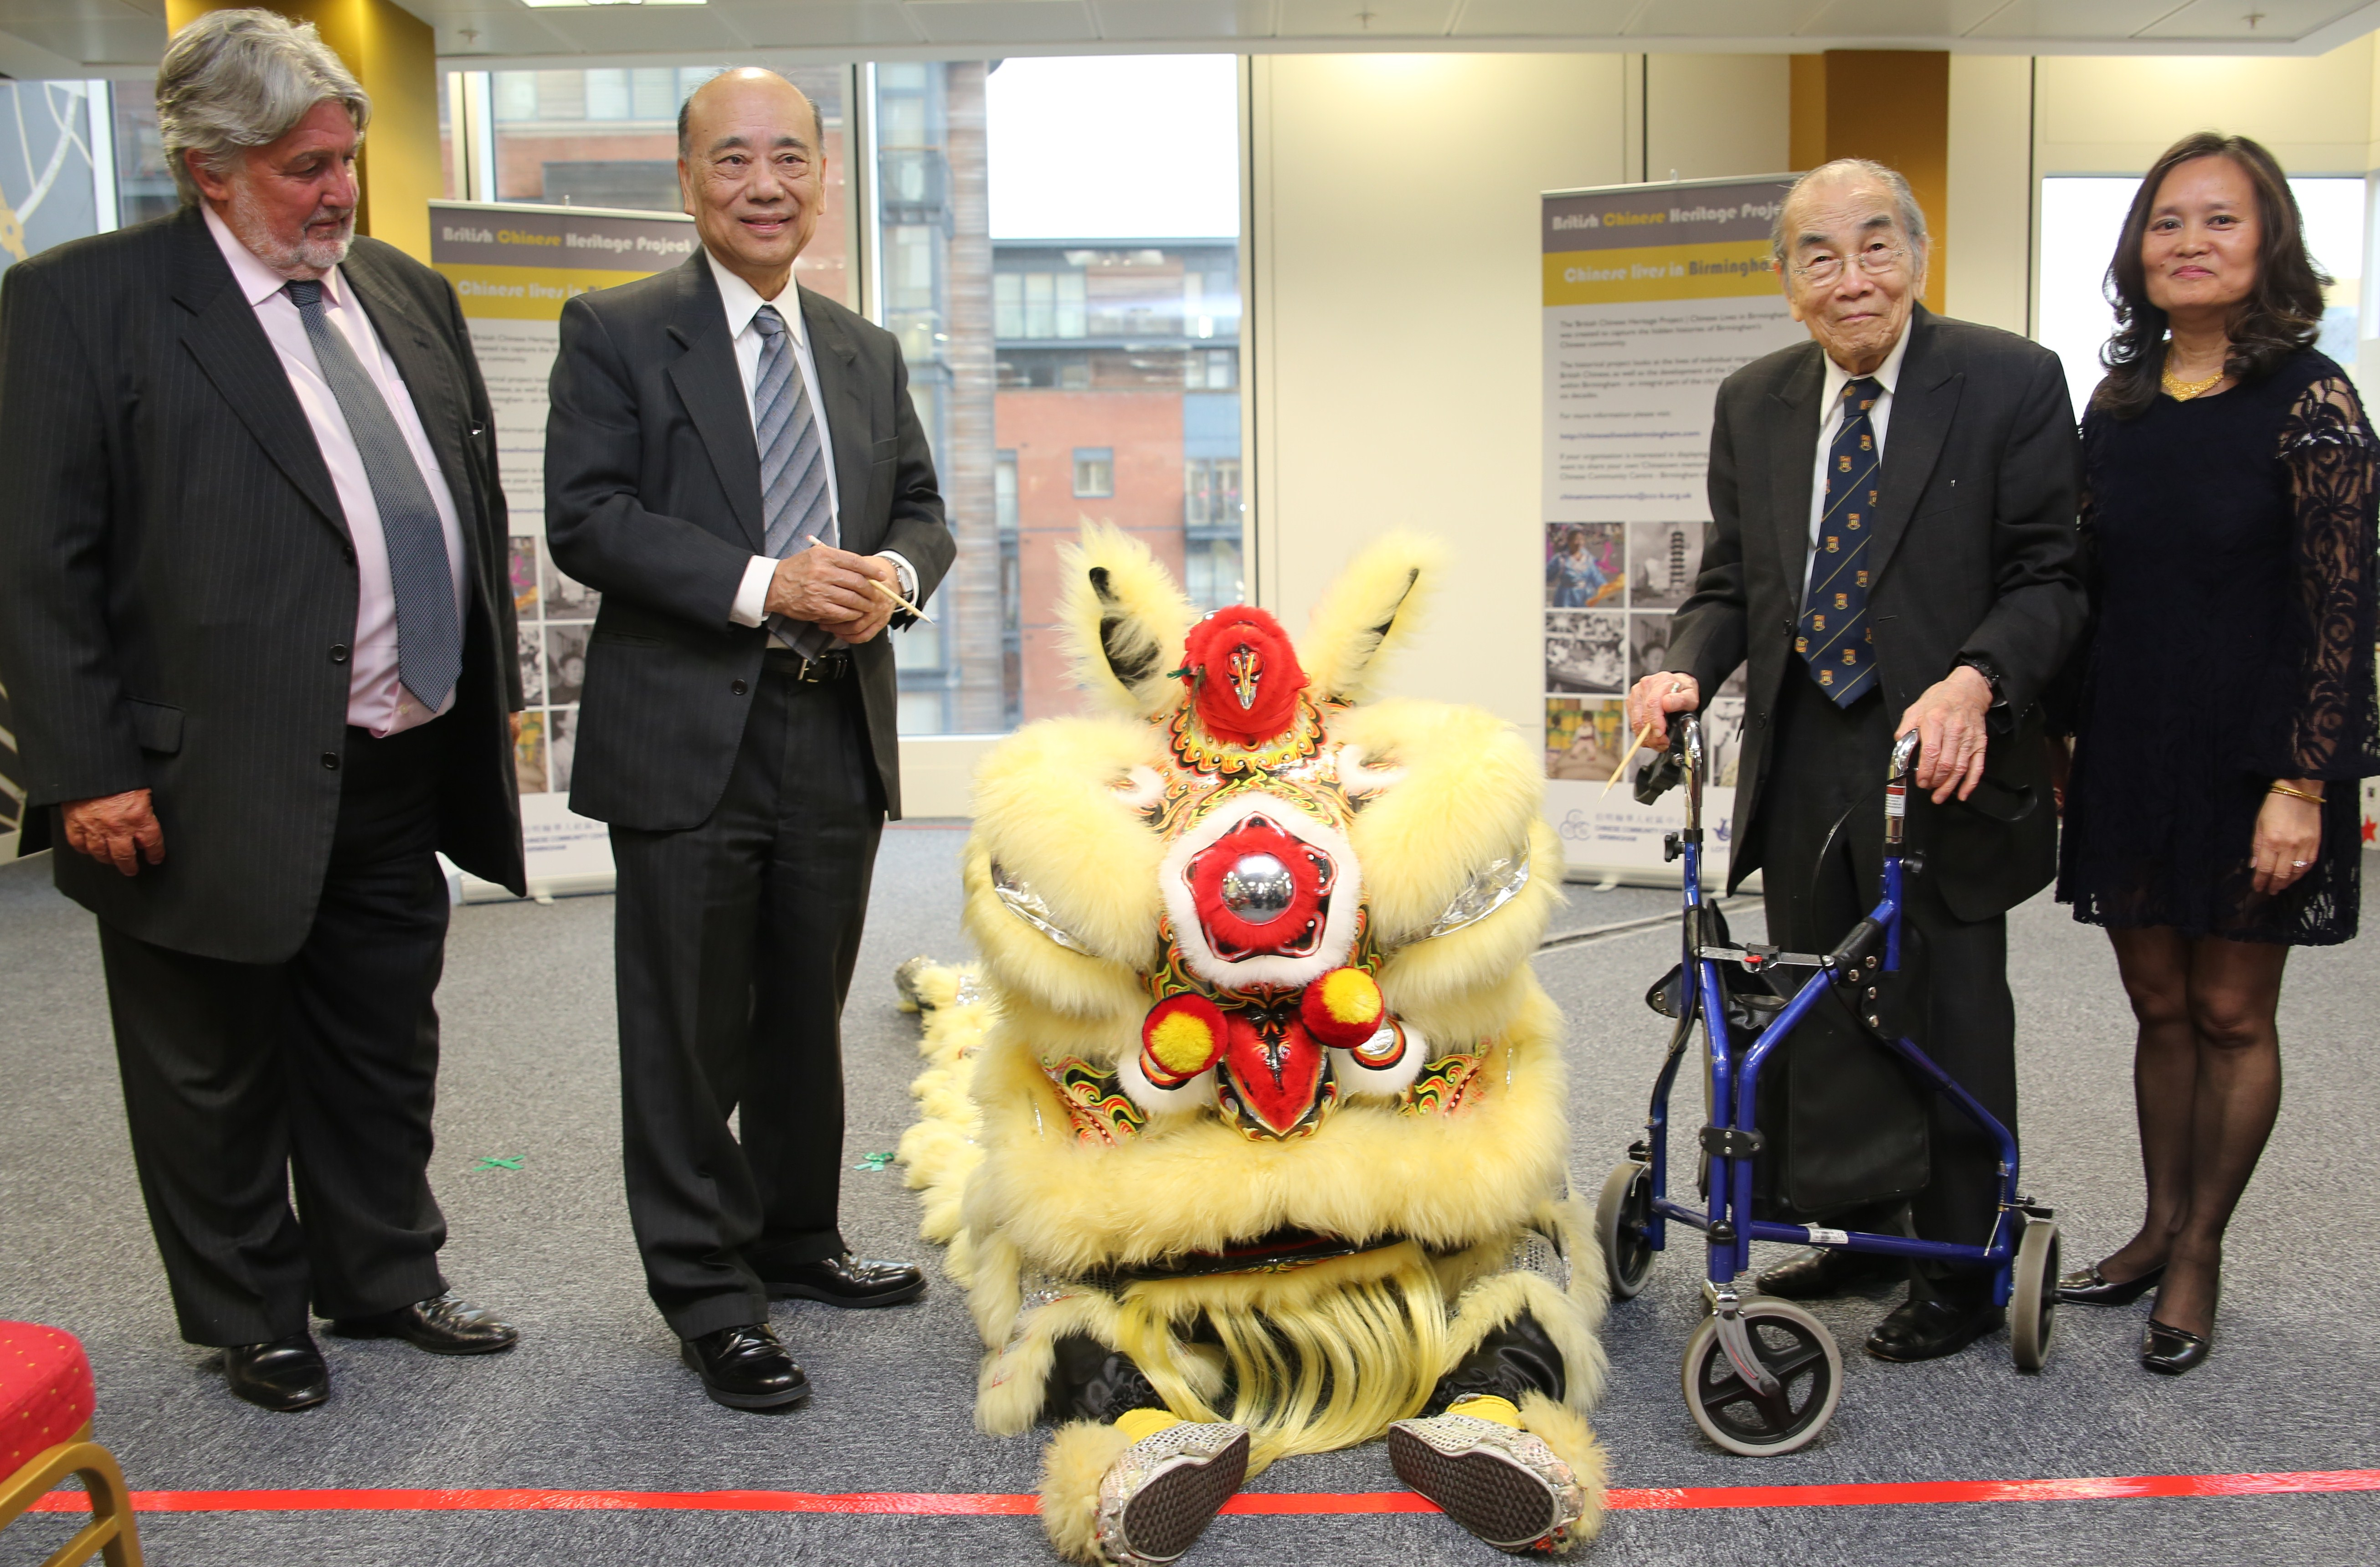 The exhibition launch at The Cube received coverage in local, national and international media - Lion